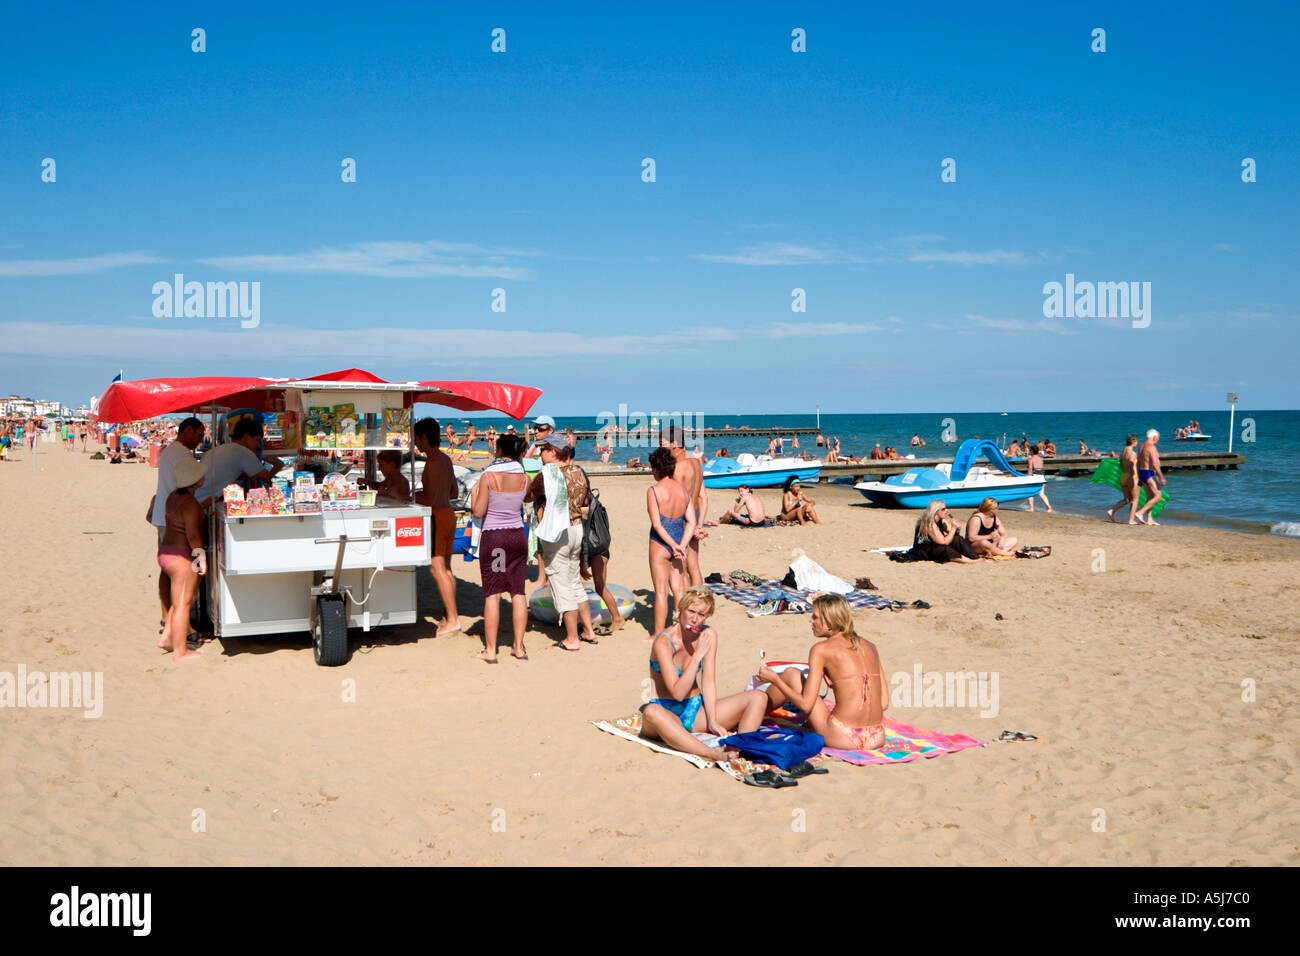 Beach, Lido de Jesolo, Venetian Riviera, Italy Stock Photo